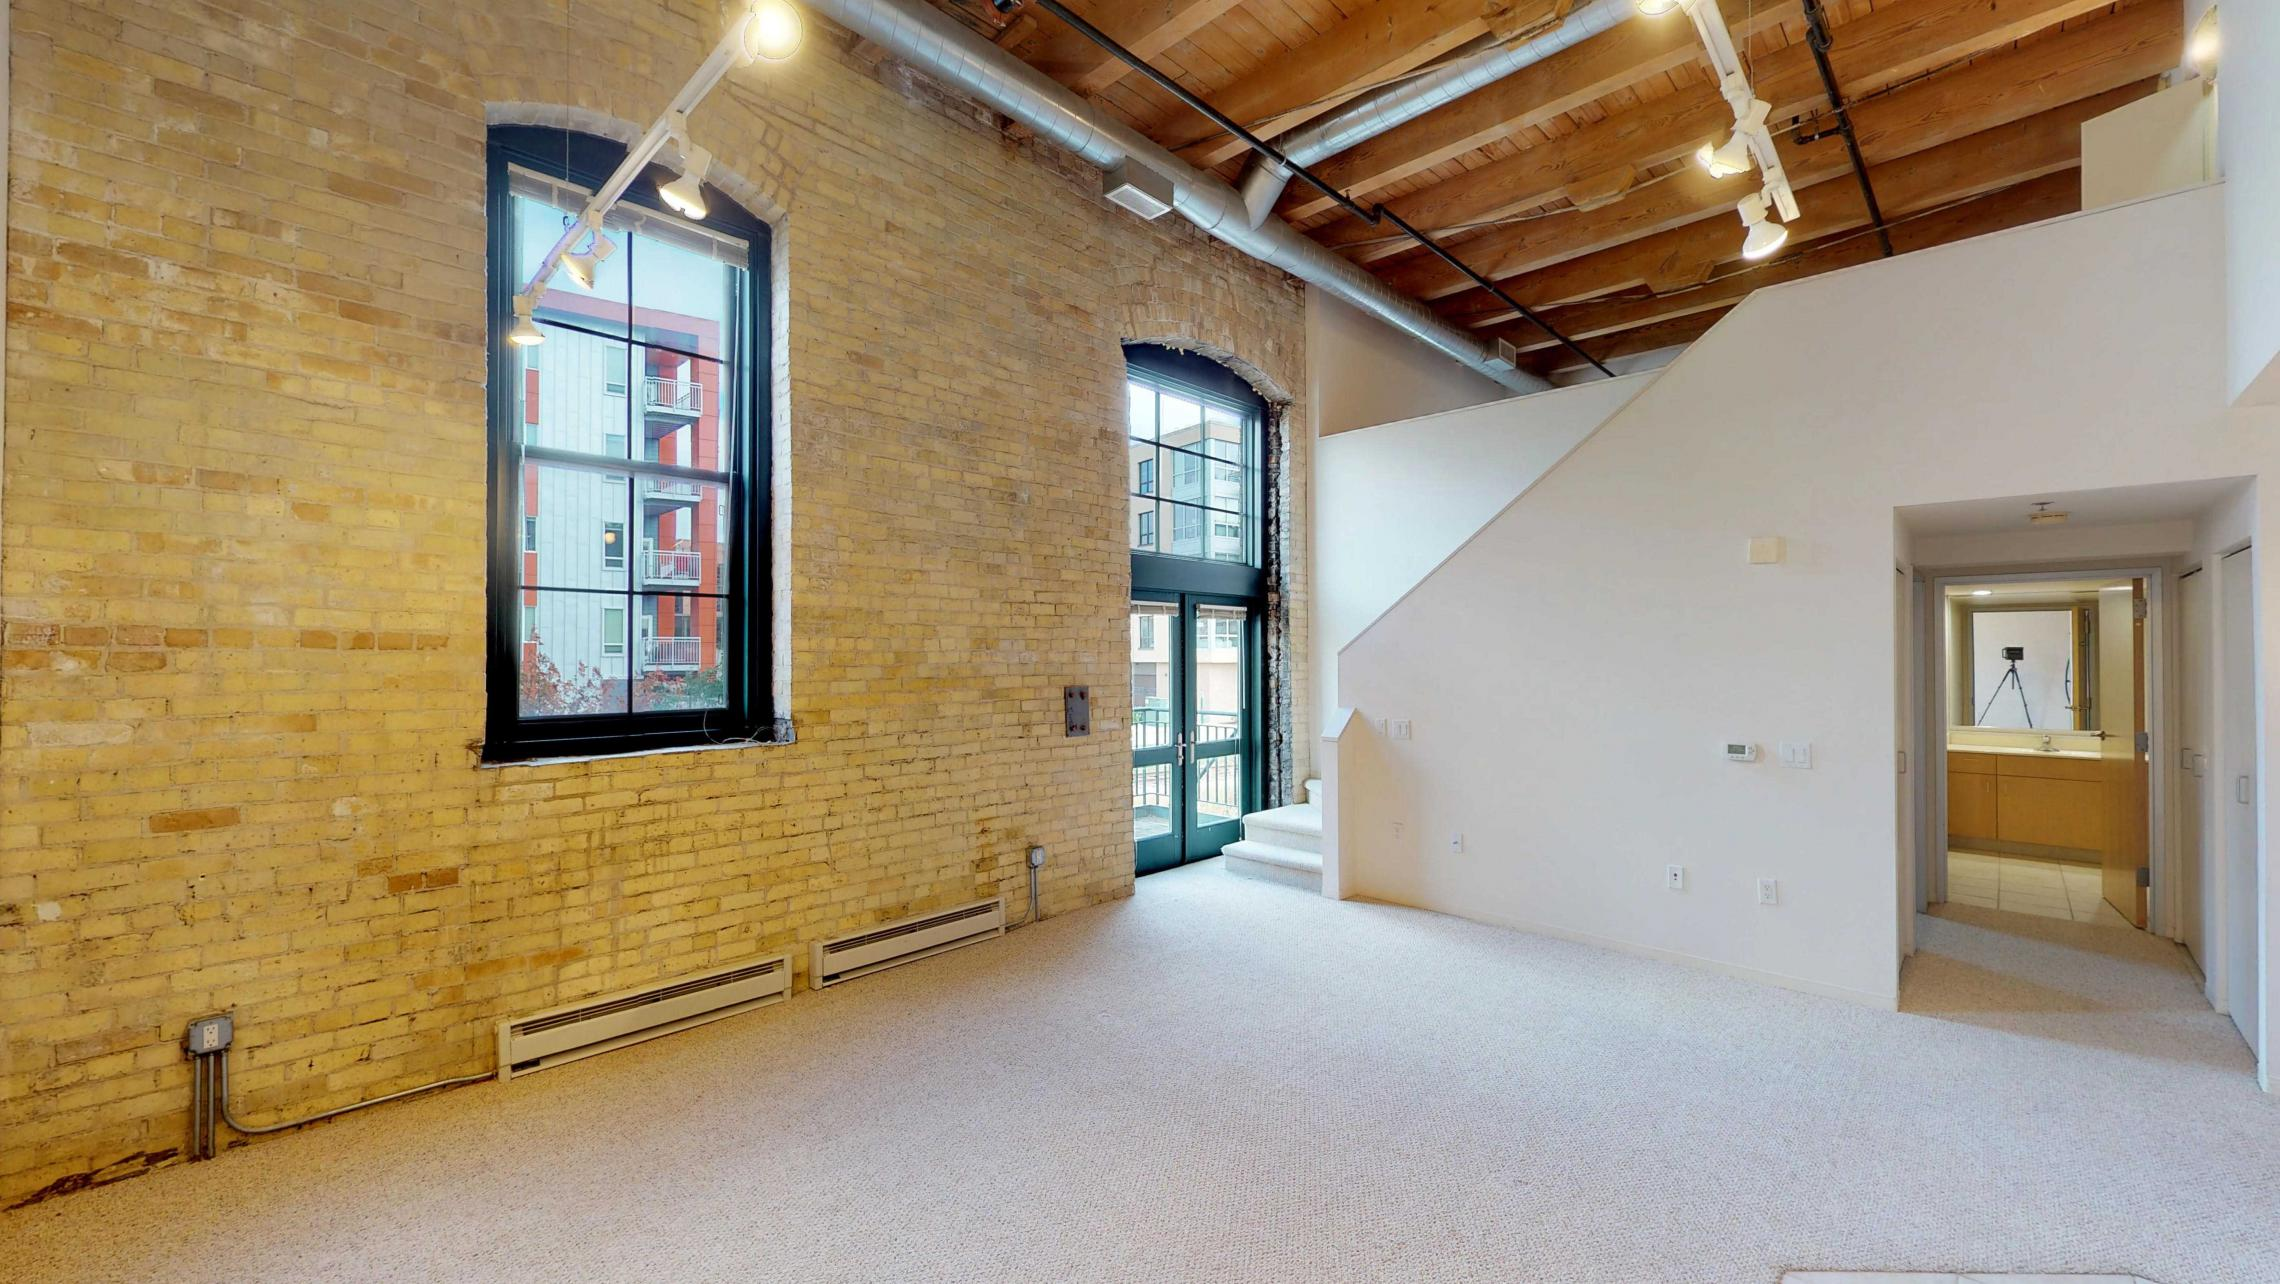 Tobacco-Lofts-E203-lofted-two-bedroom-exposed-brick-upscale-design-historic